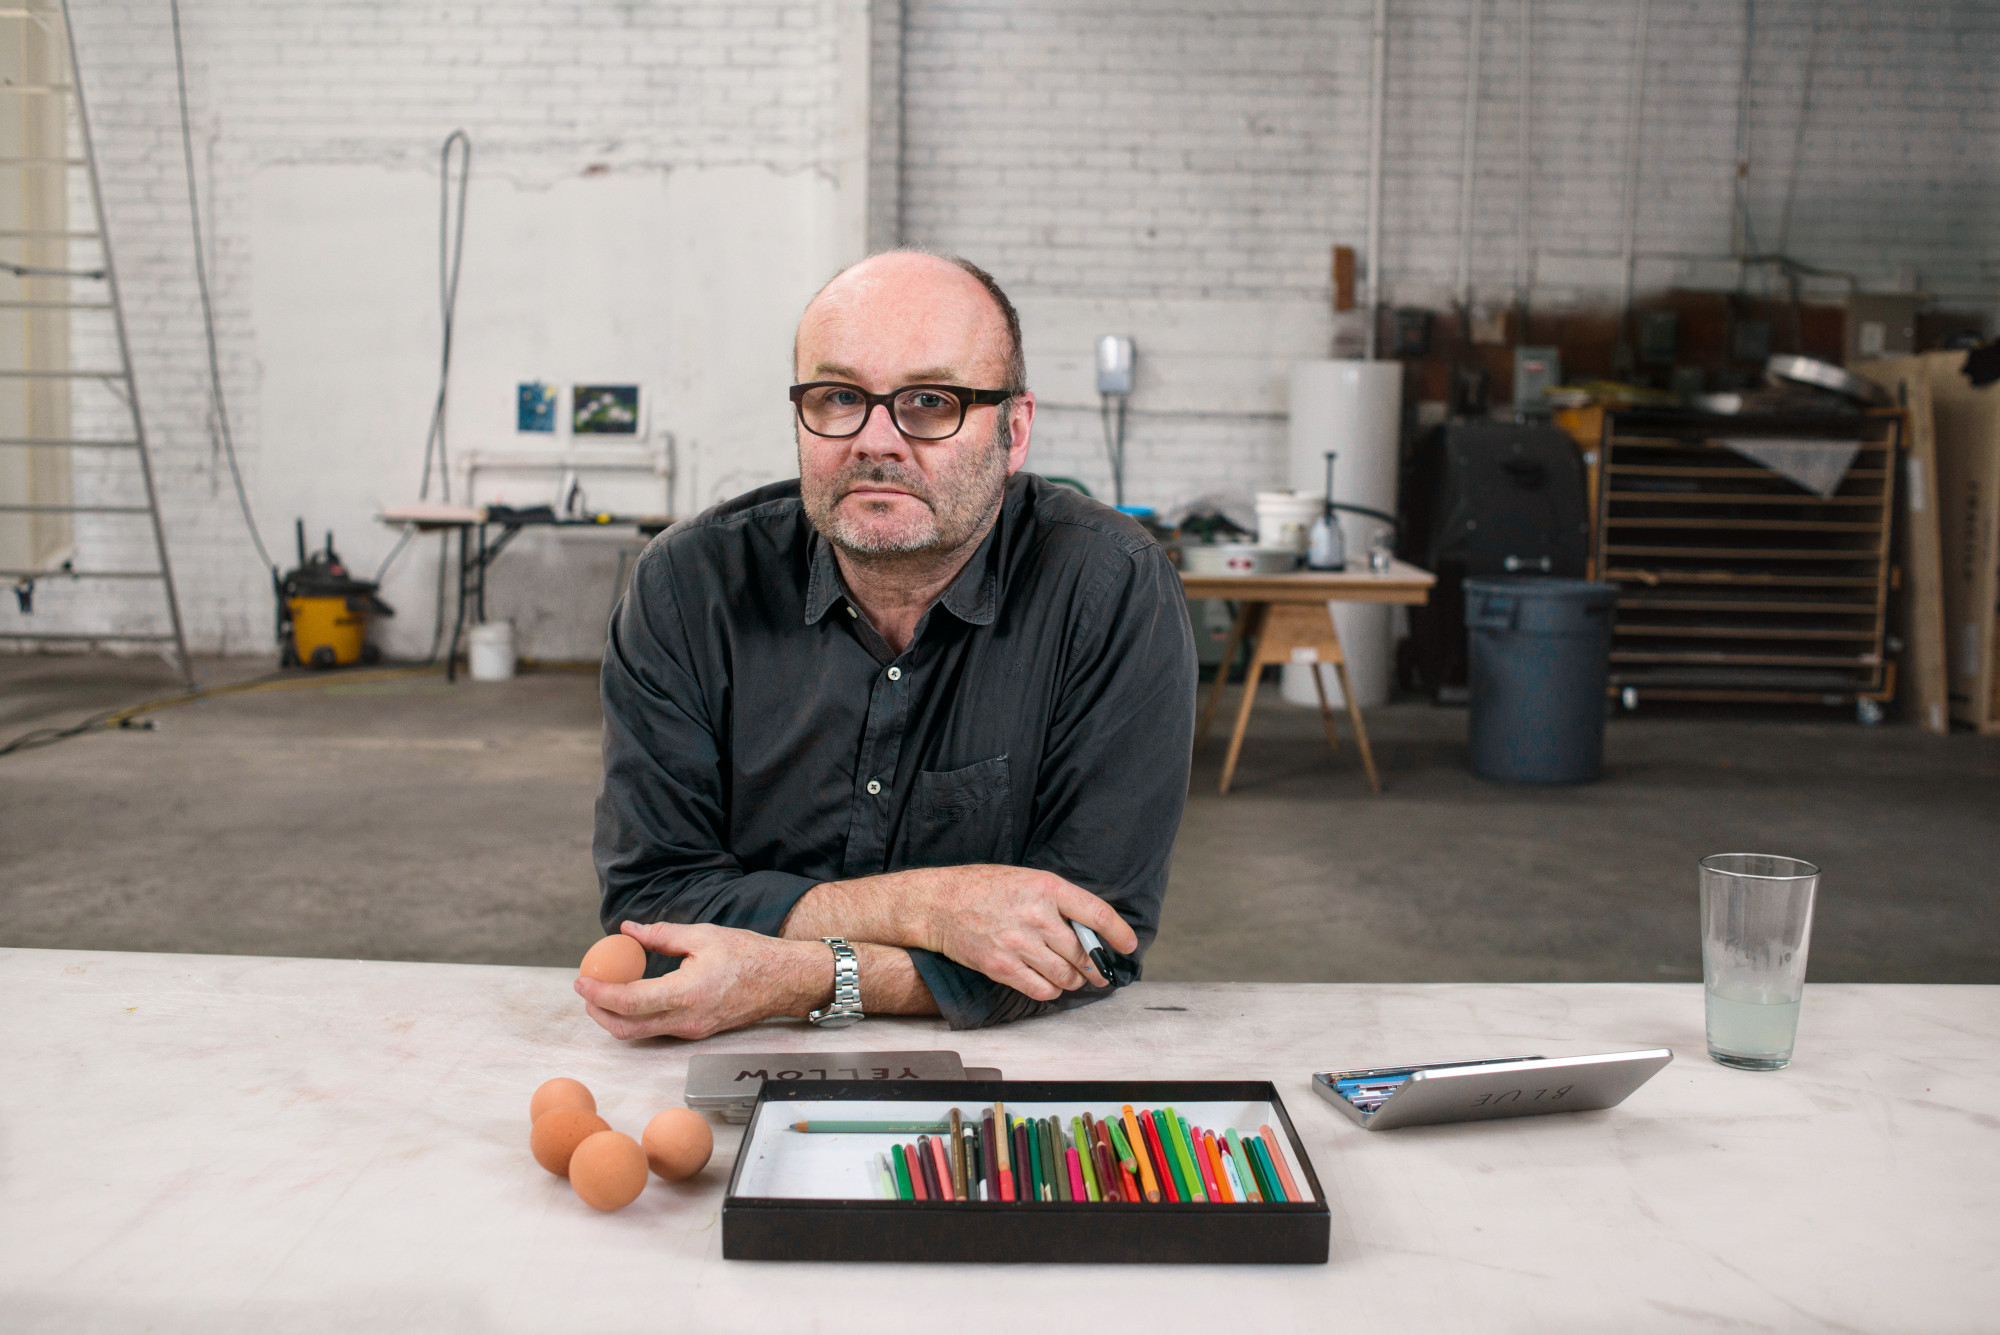 Make this Easter an art-filled one with Thomas Demand and Open Studio